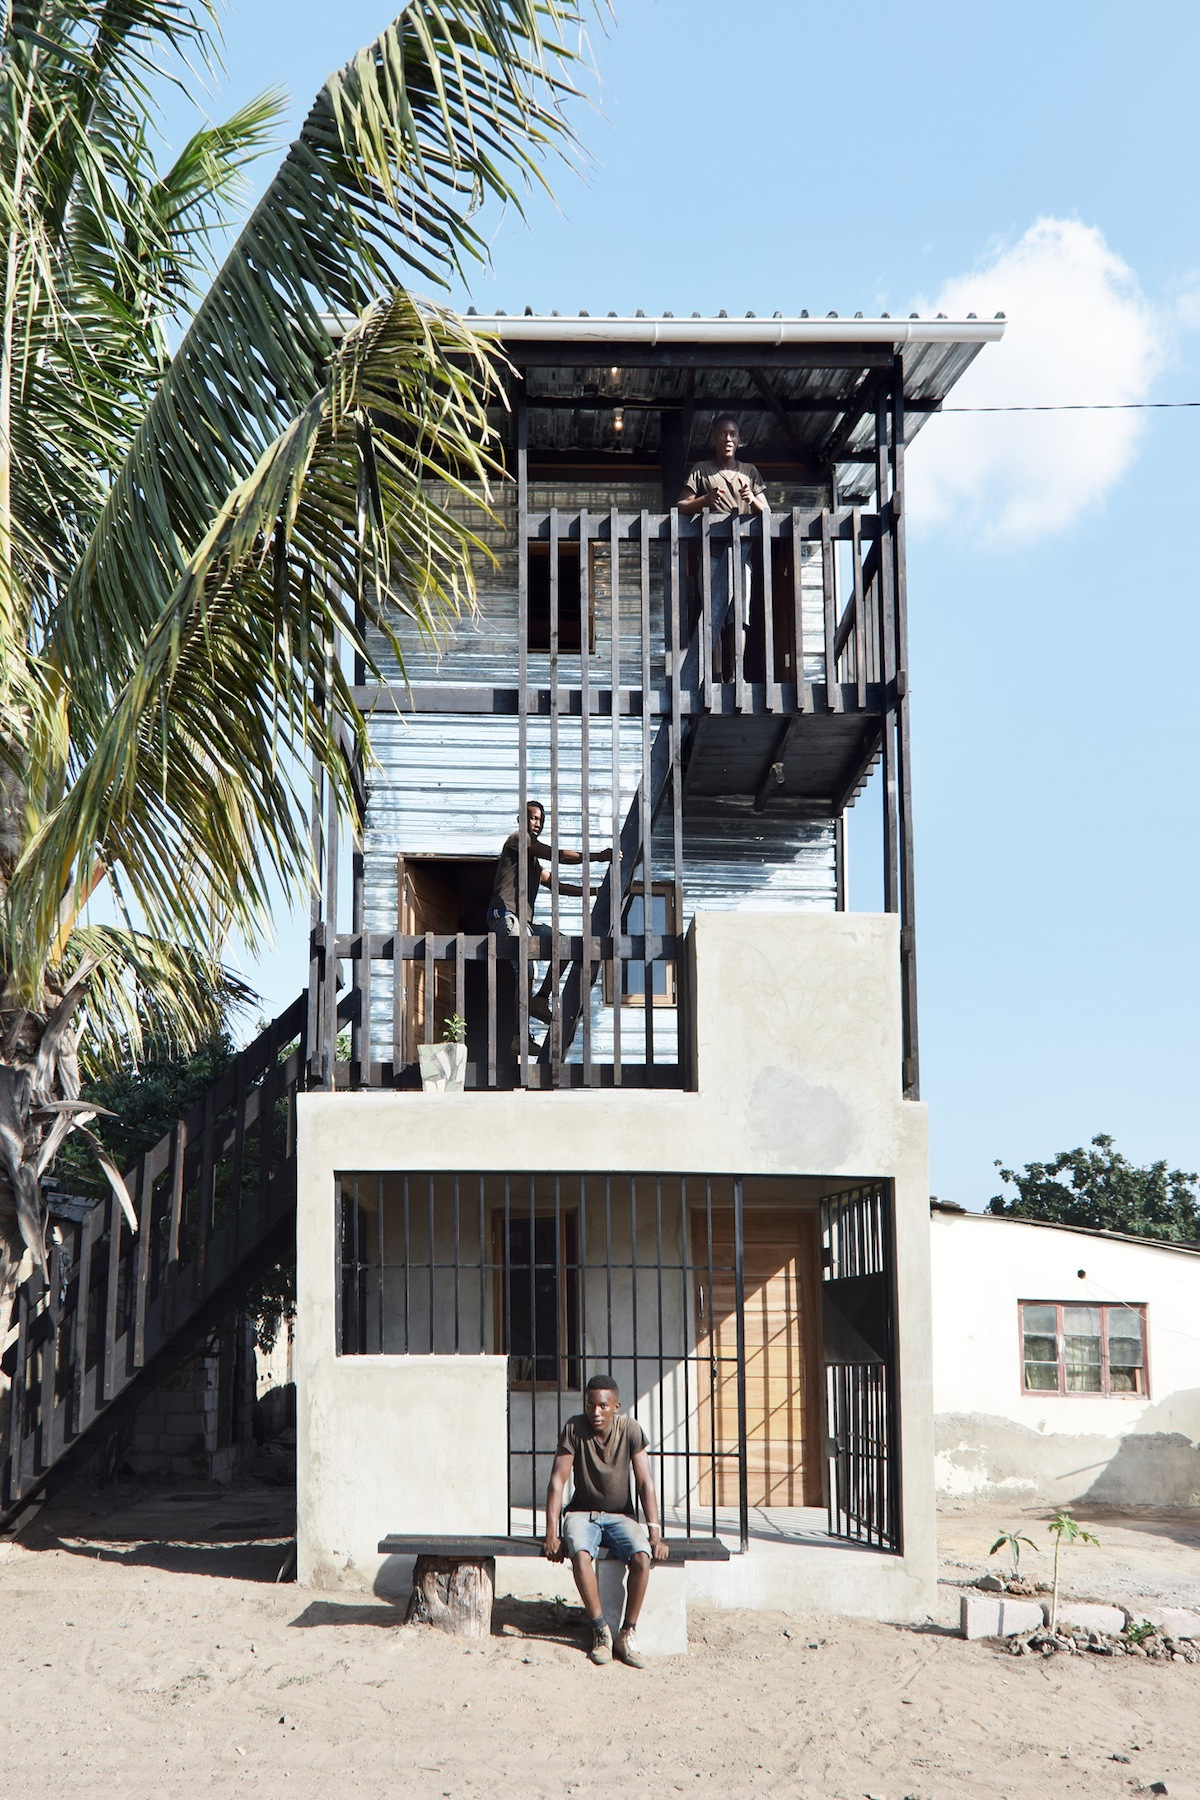 Low-cost House In Mozambique Features Corrugated Iron And